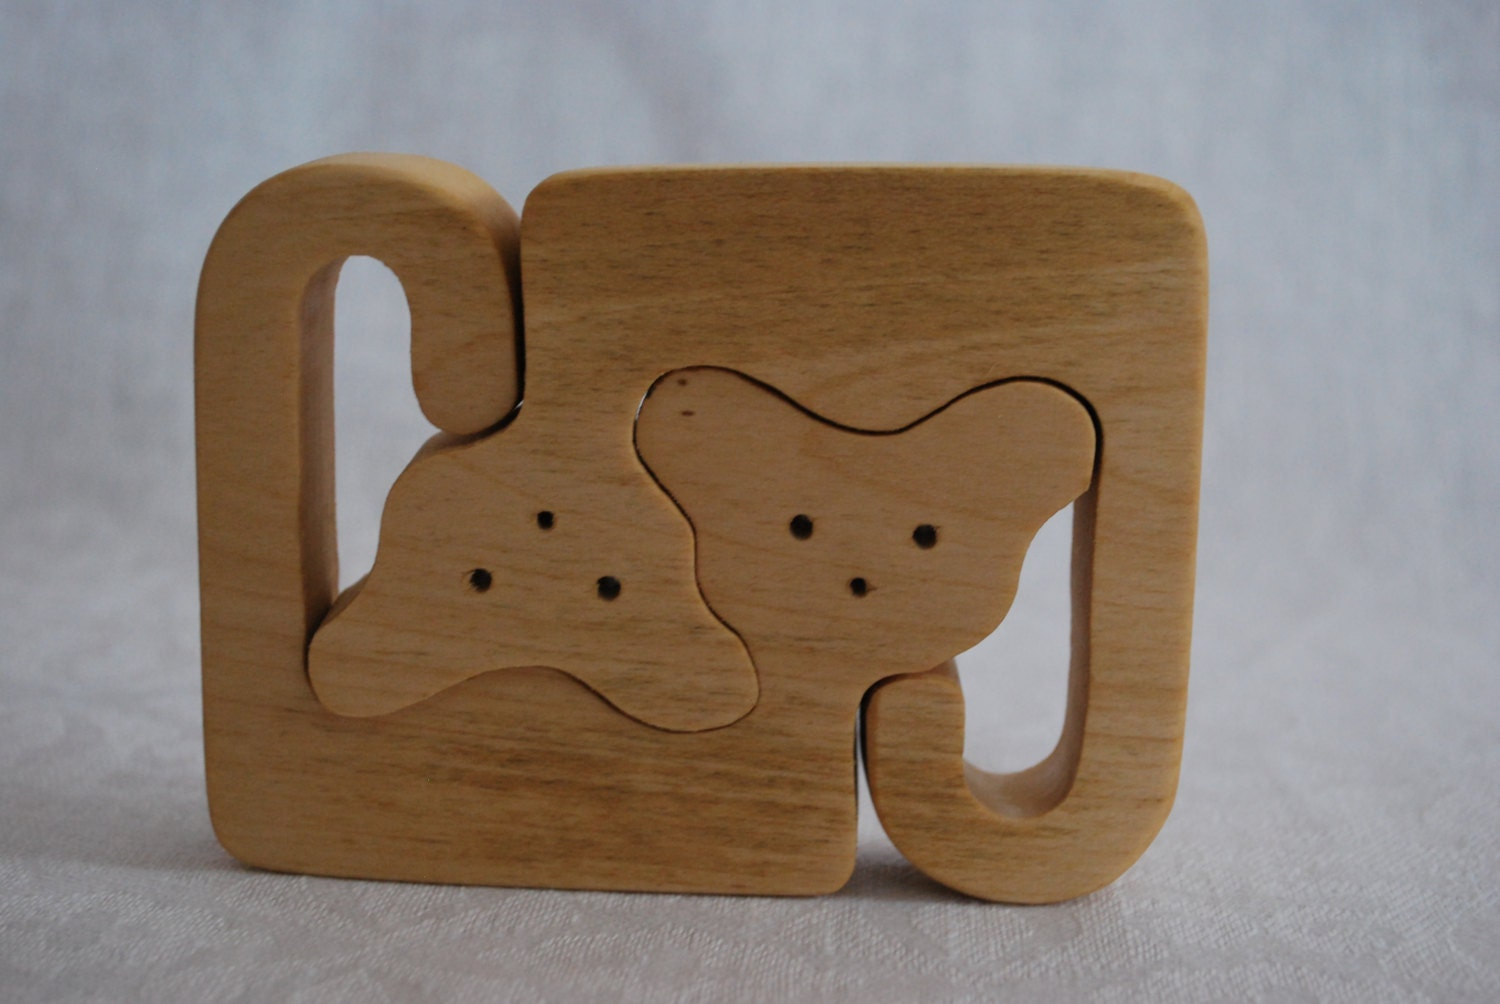 Wood Puzzle Wooden Puzzle Wooden Cat Puzzle Cats Family